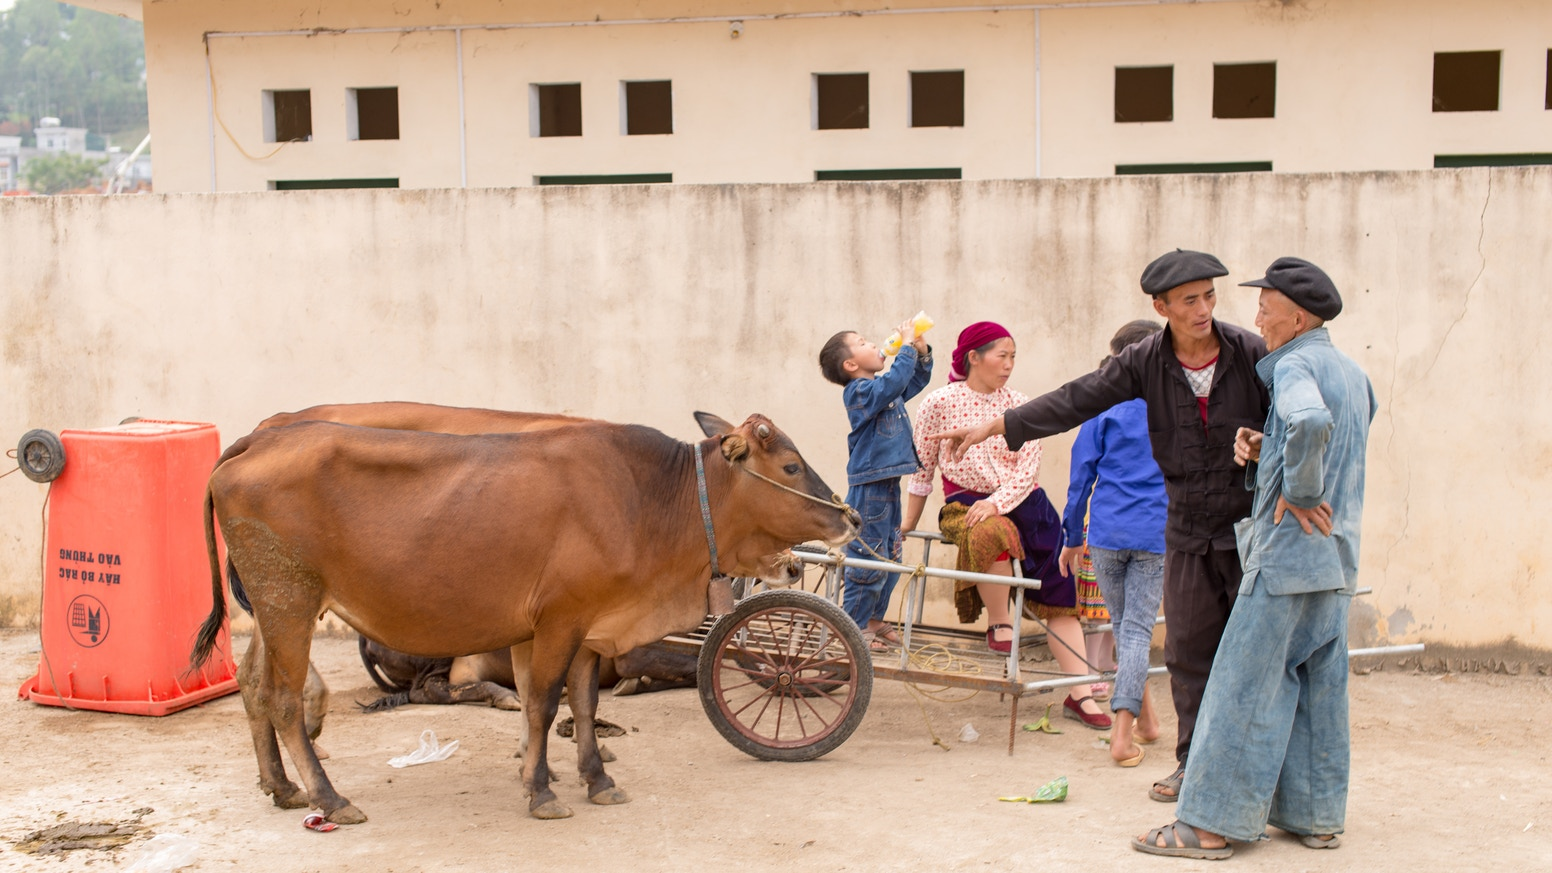 For about the last two years I've been photographing and exploring the daily life in northern Vietnam.